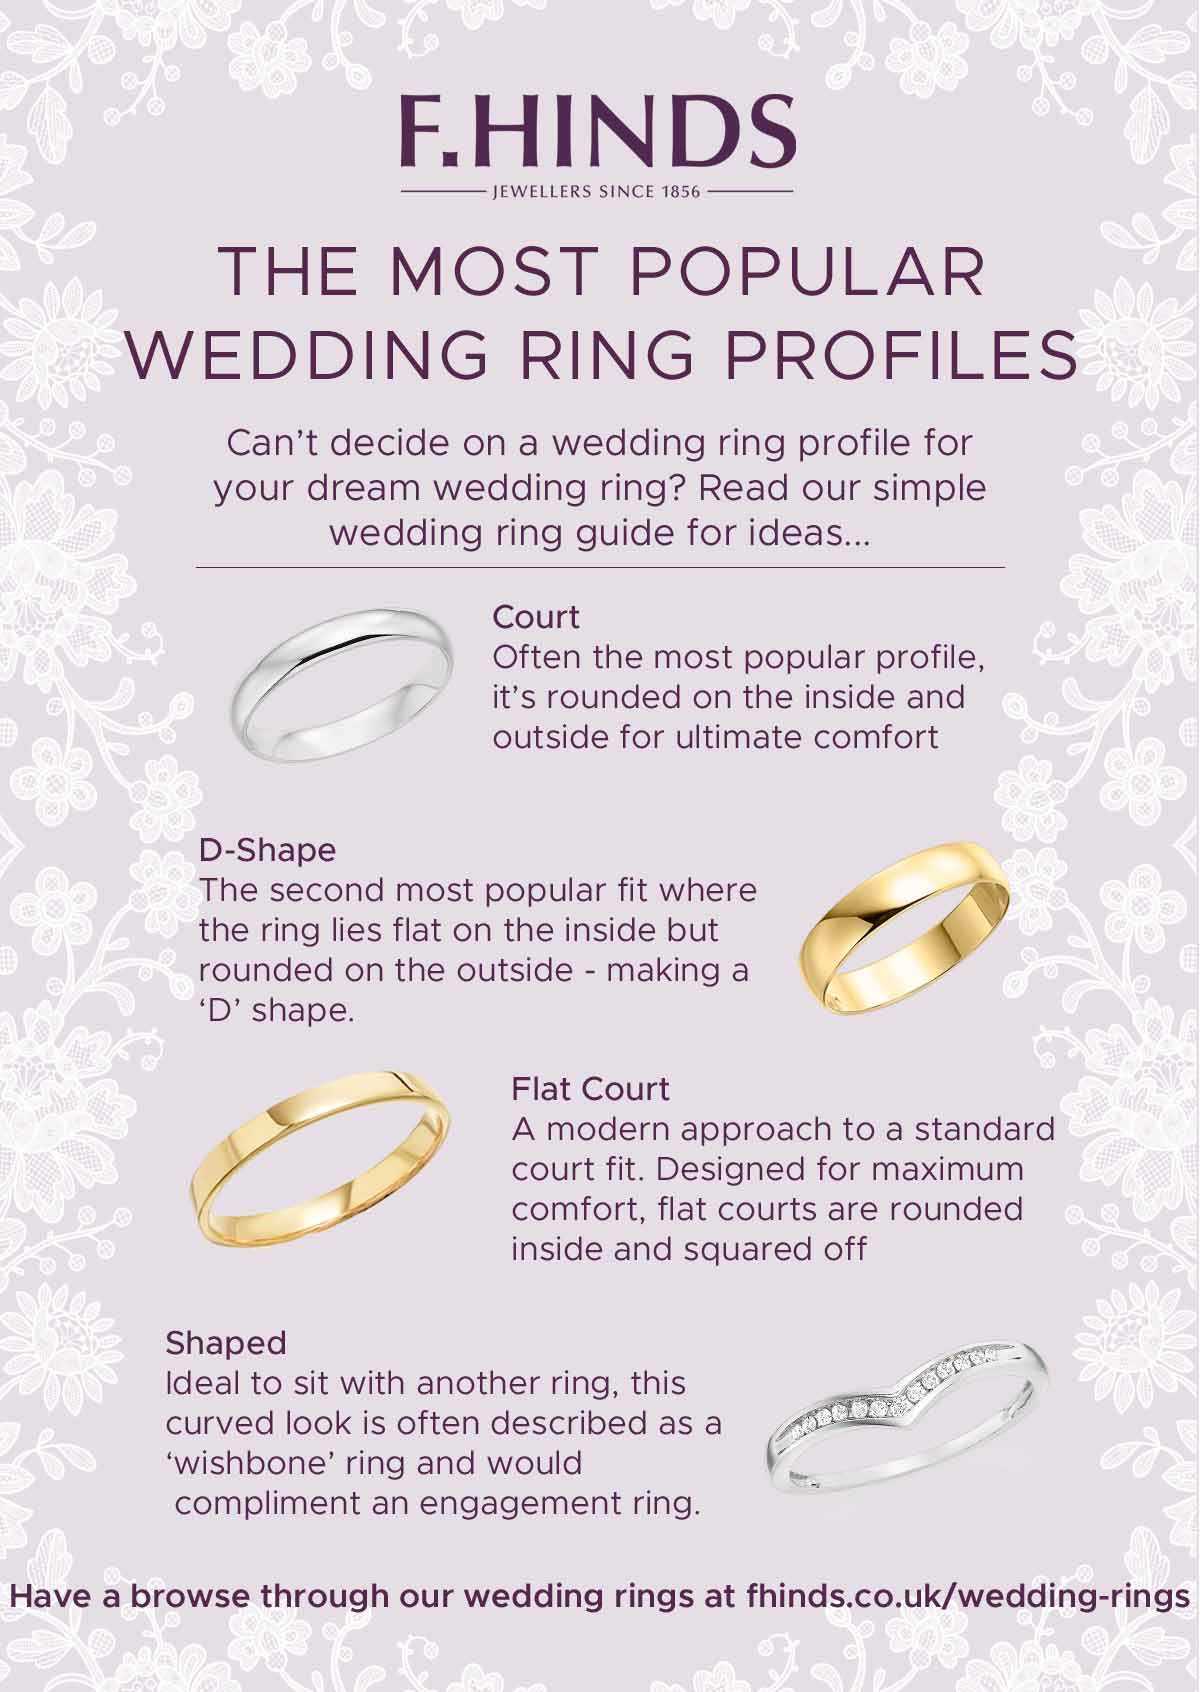 Click Here To Browse Through Our Wedding Rings